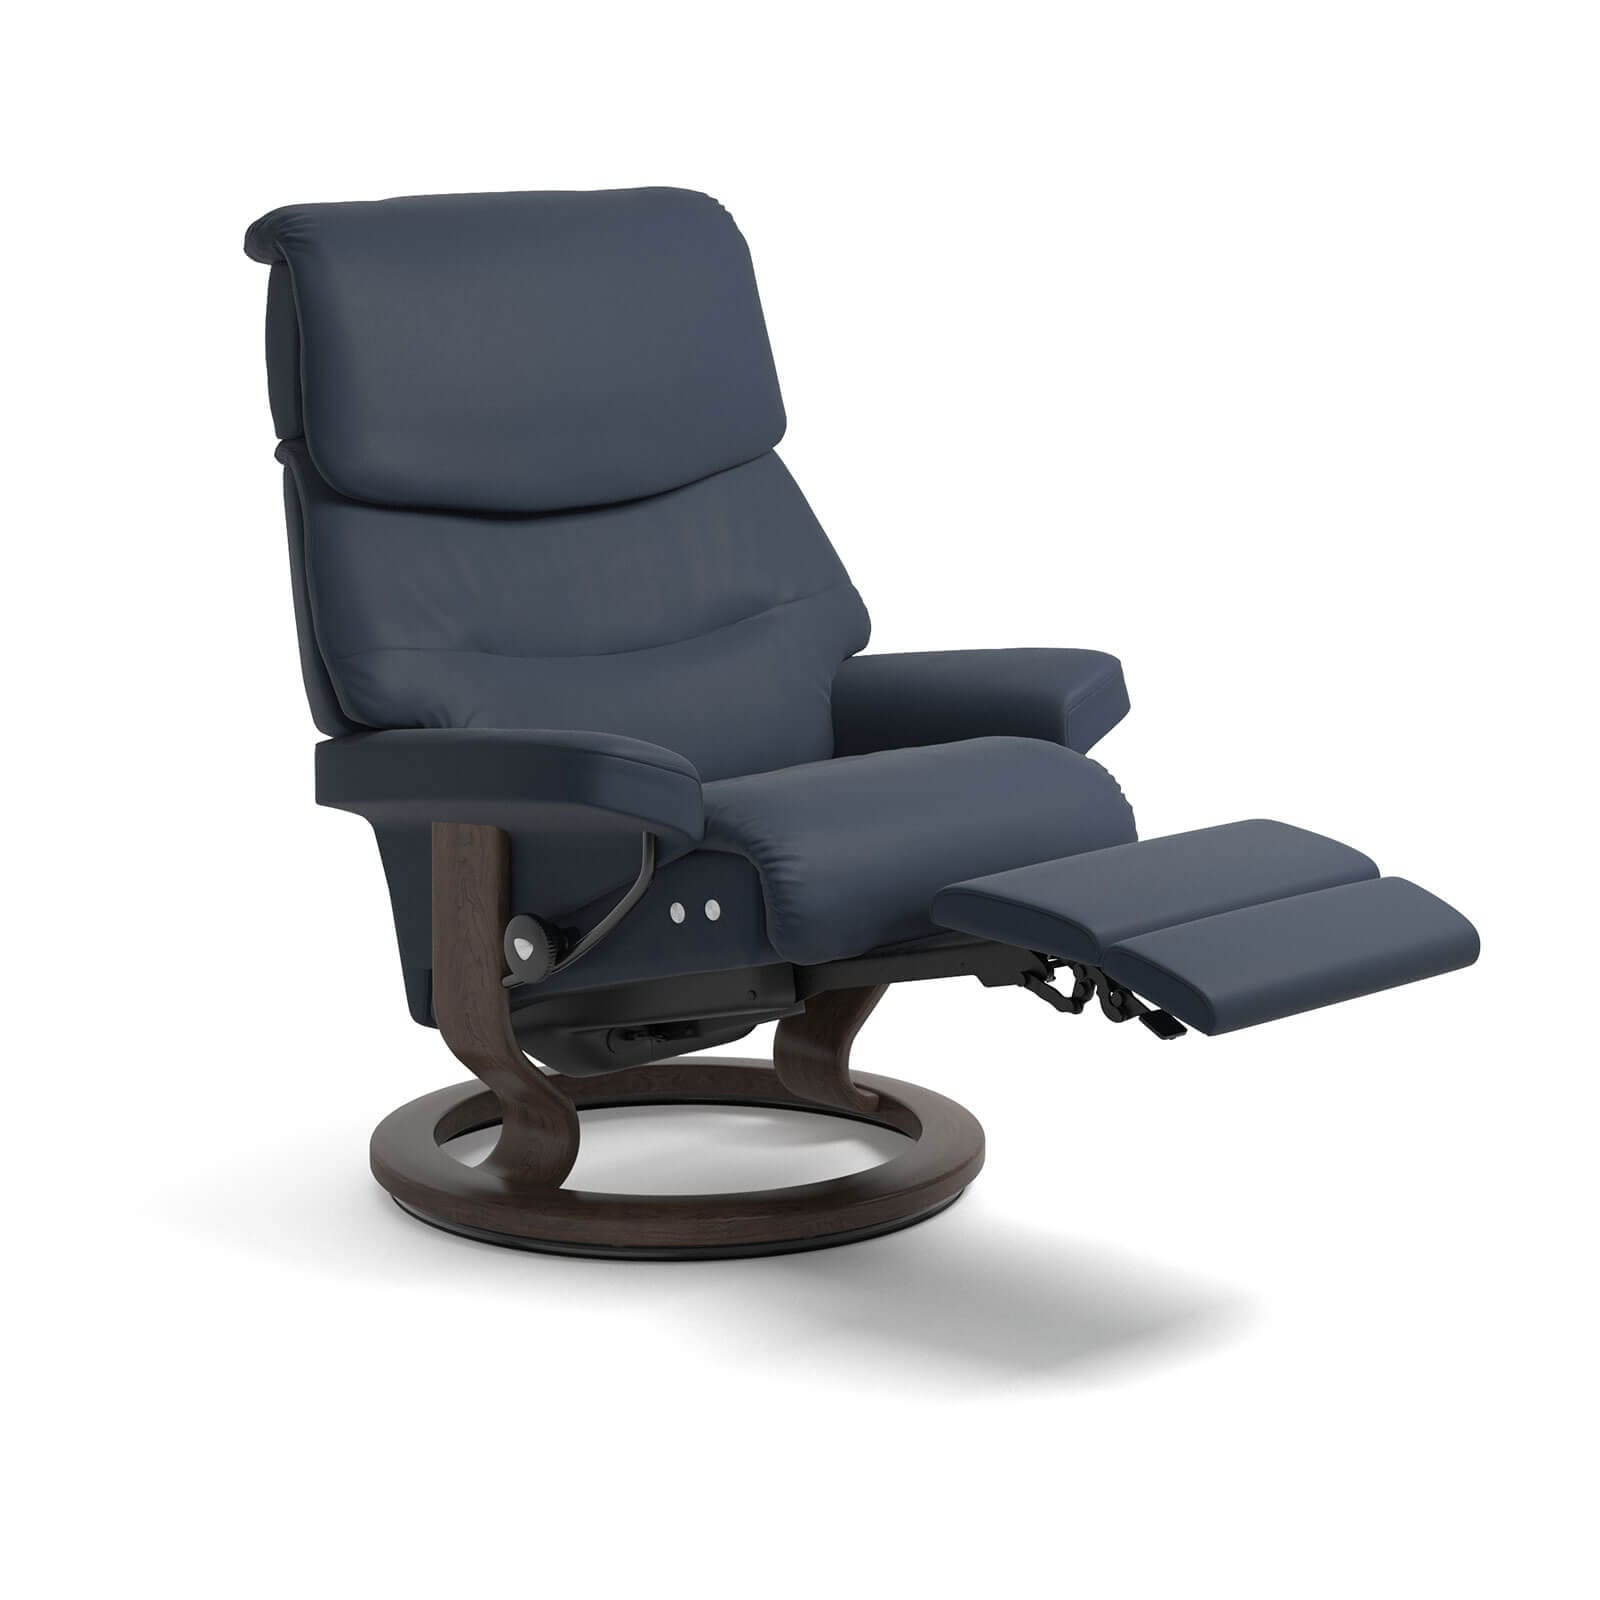 Stressless Wing Signature Sessel Stressless Sessel Test Test Ekornes Stressless